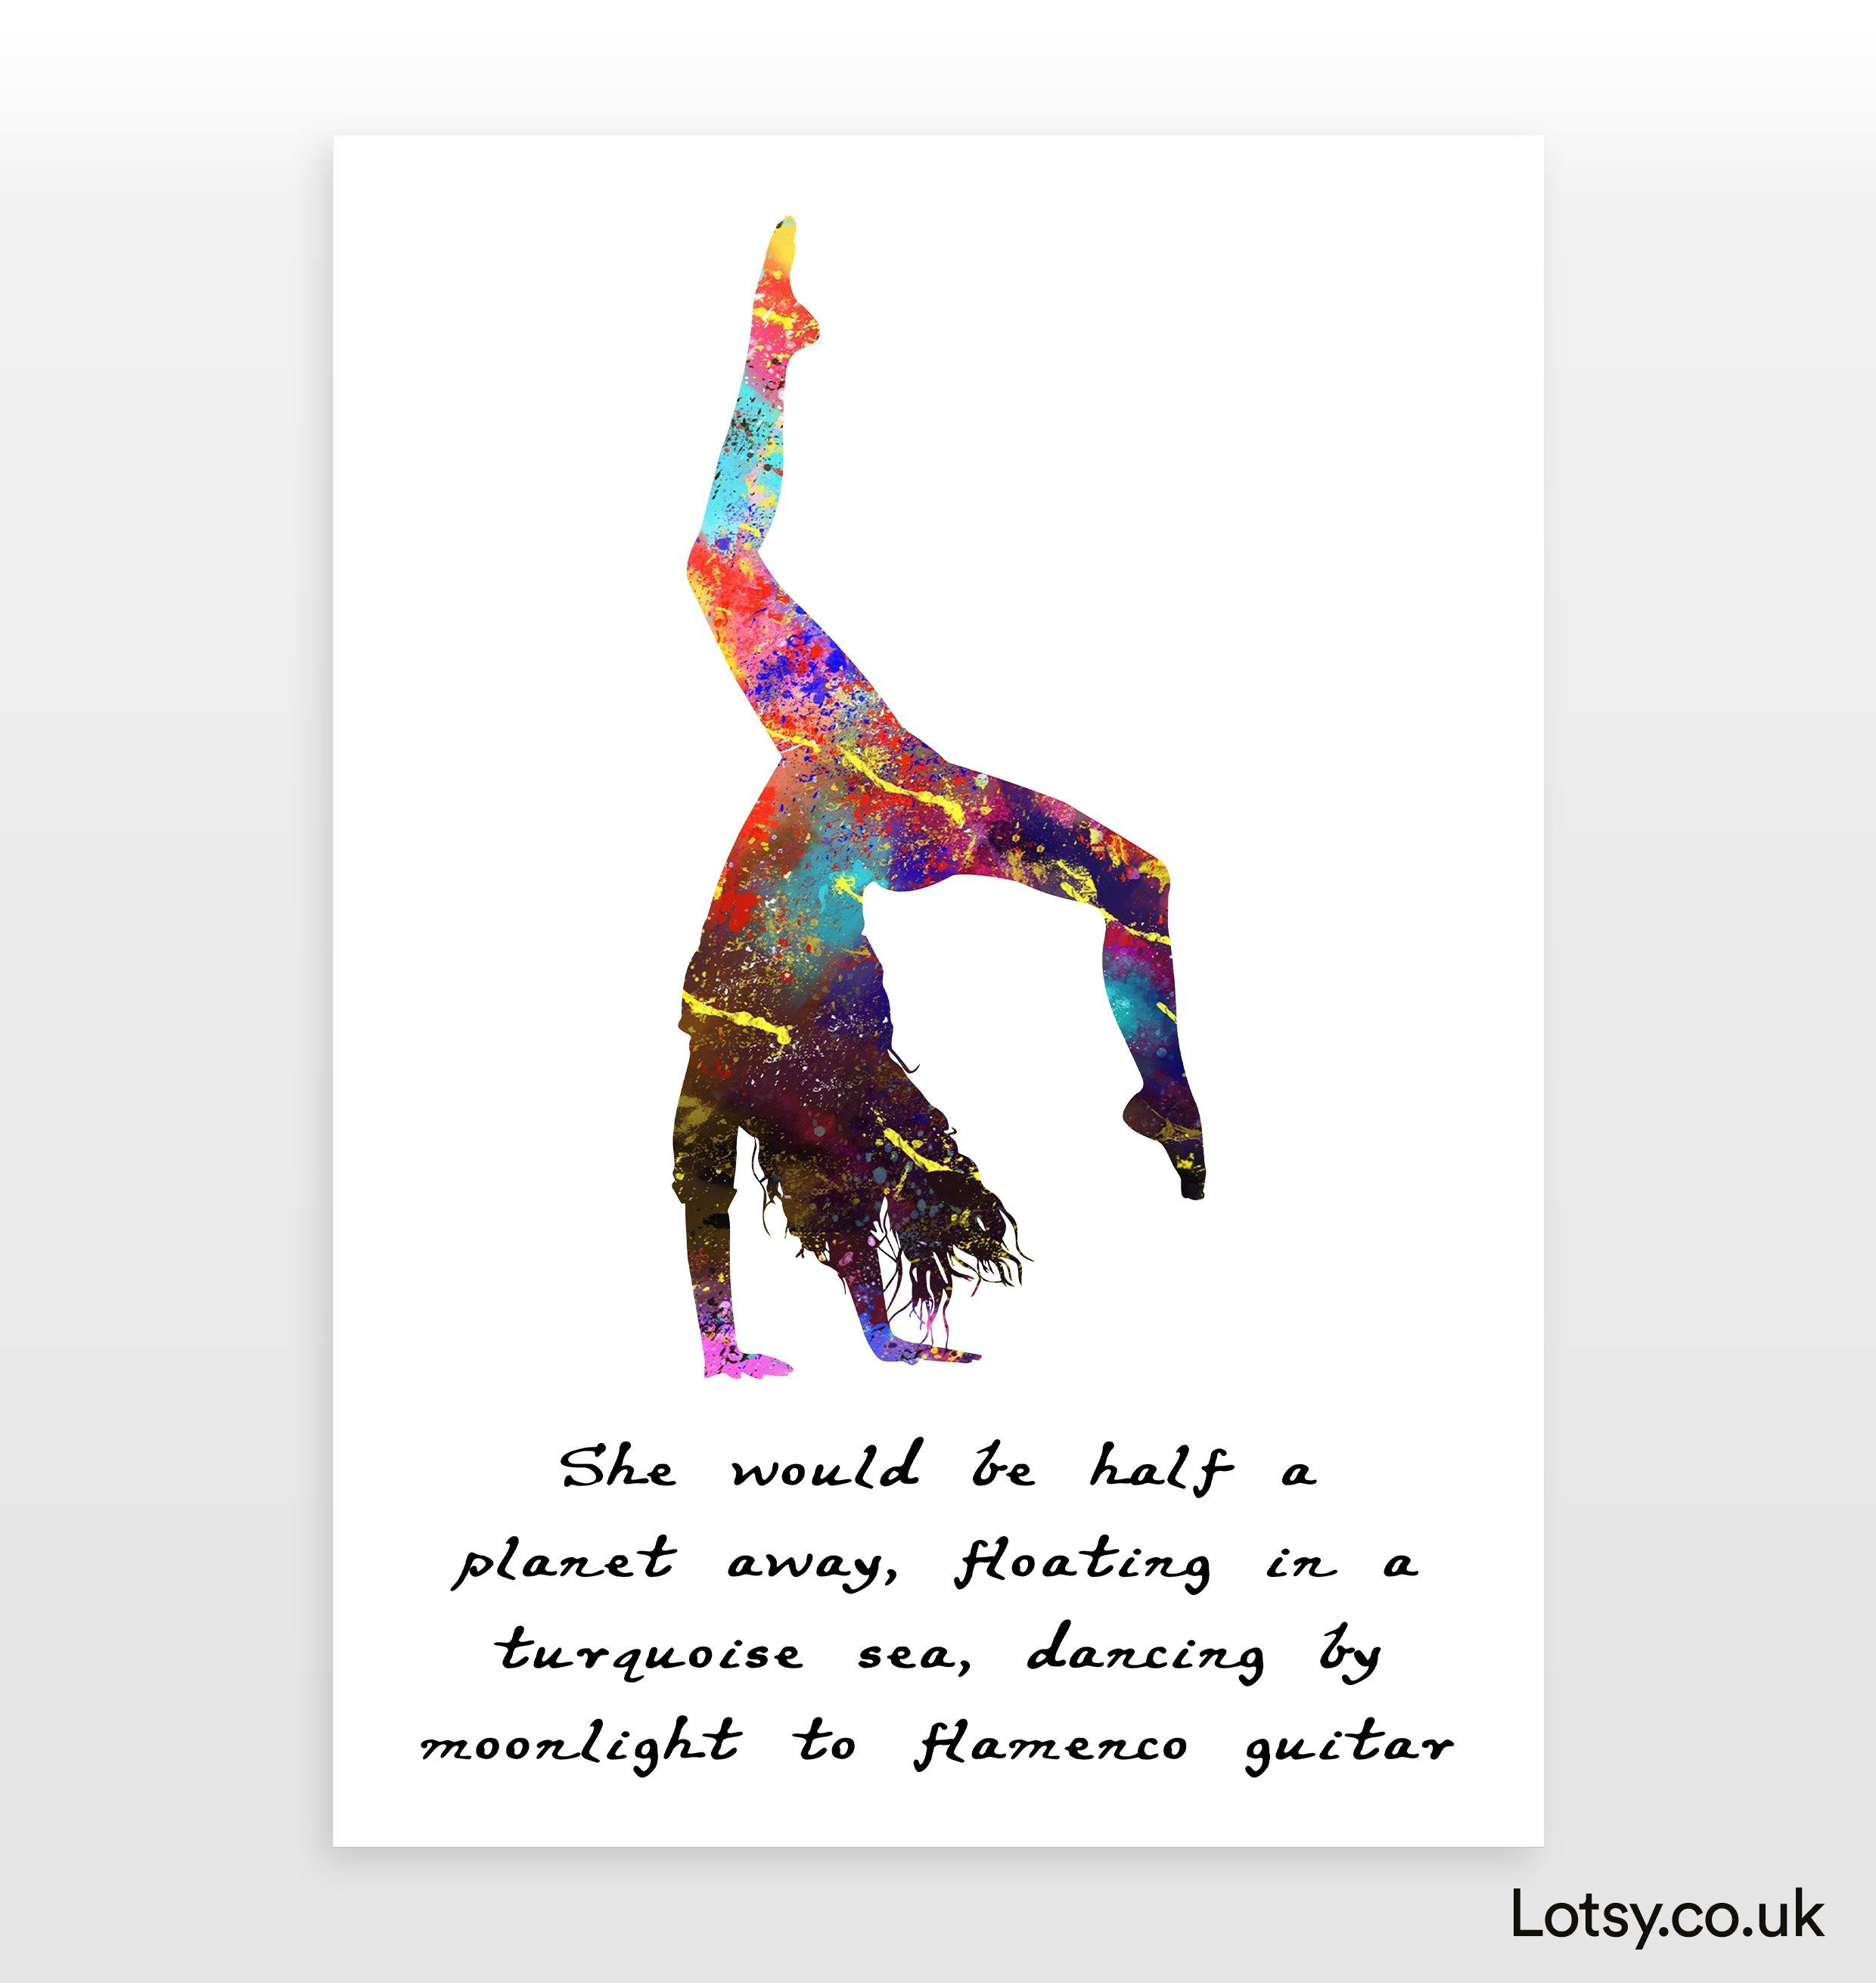 Ballet Quote - She would be half a planet away - A0 - (841mm x 1189mm) (33.1inch x 46.8inch)